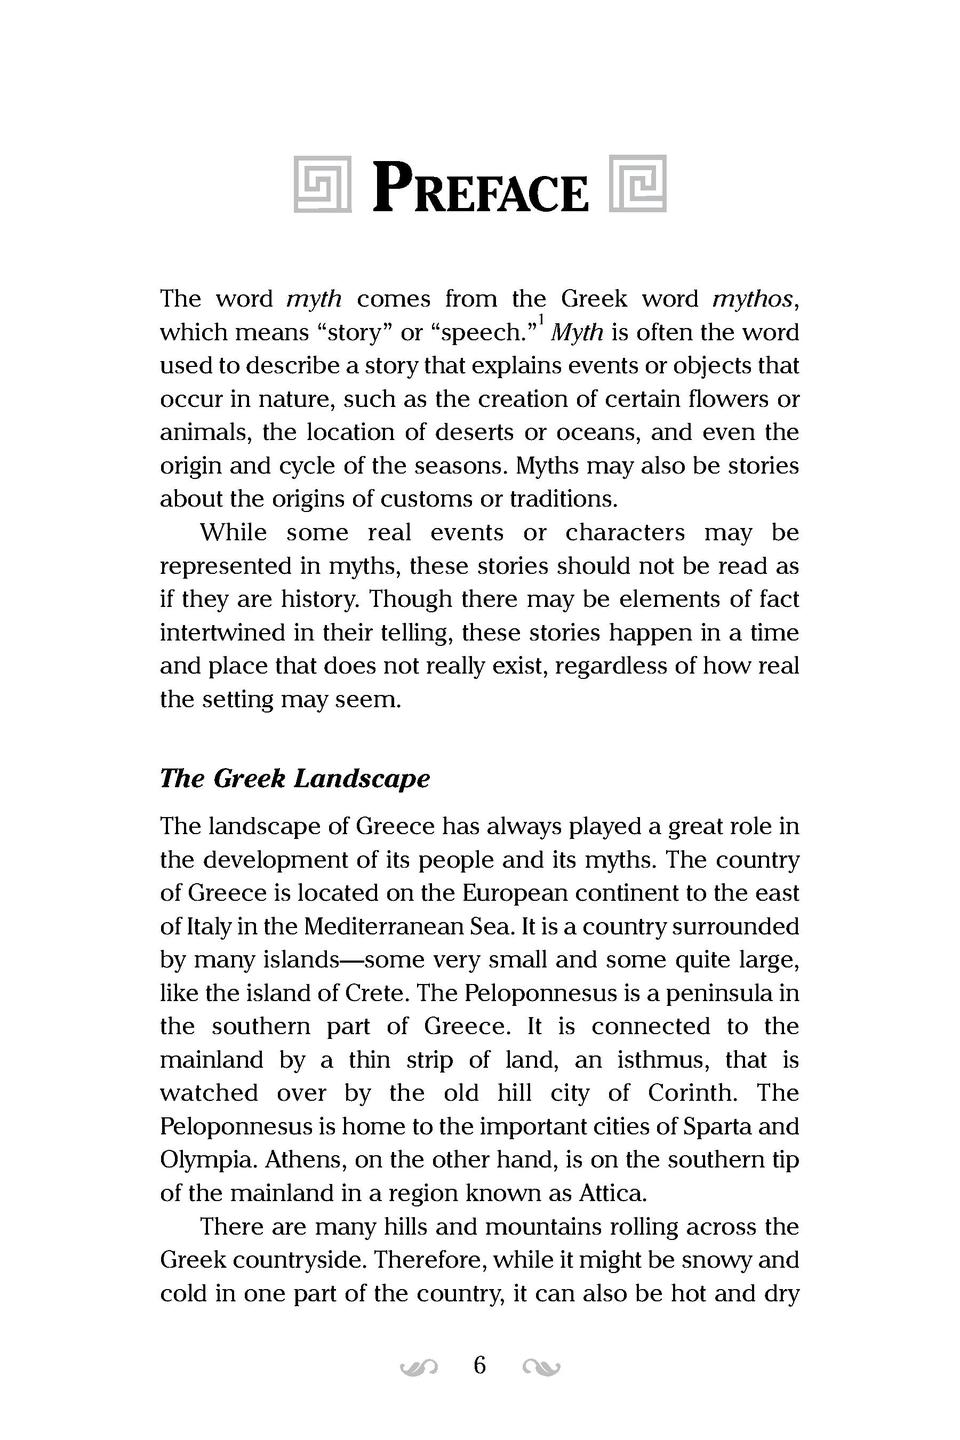 greek mythology com preface the word myth comes from the greek word mythos 1 which means story or